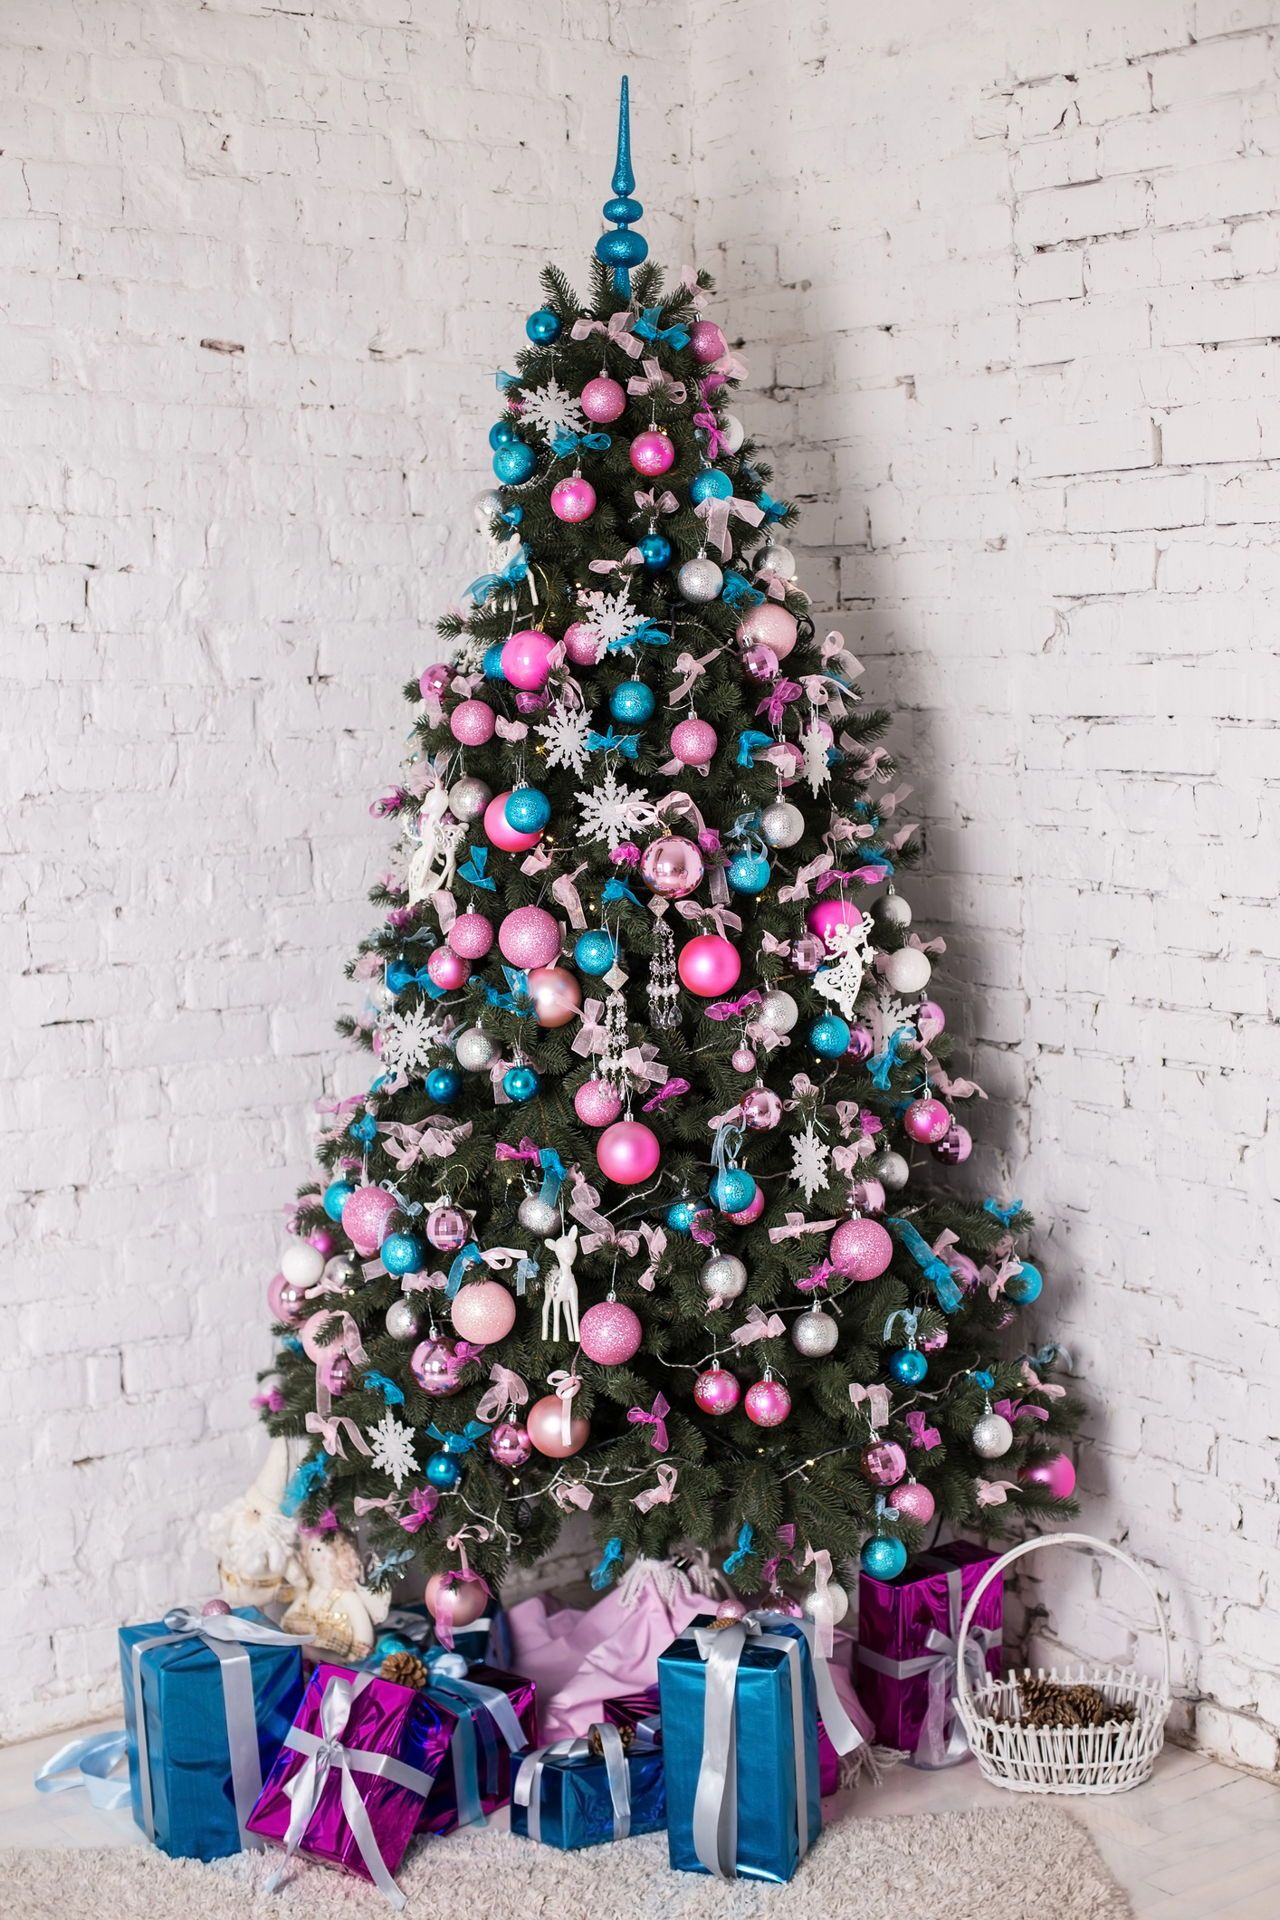 Decorated Christmas Tree White Background Christmas